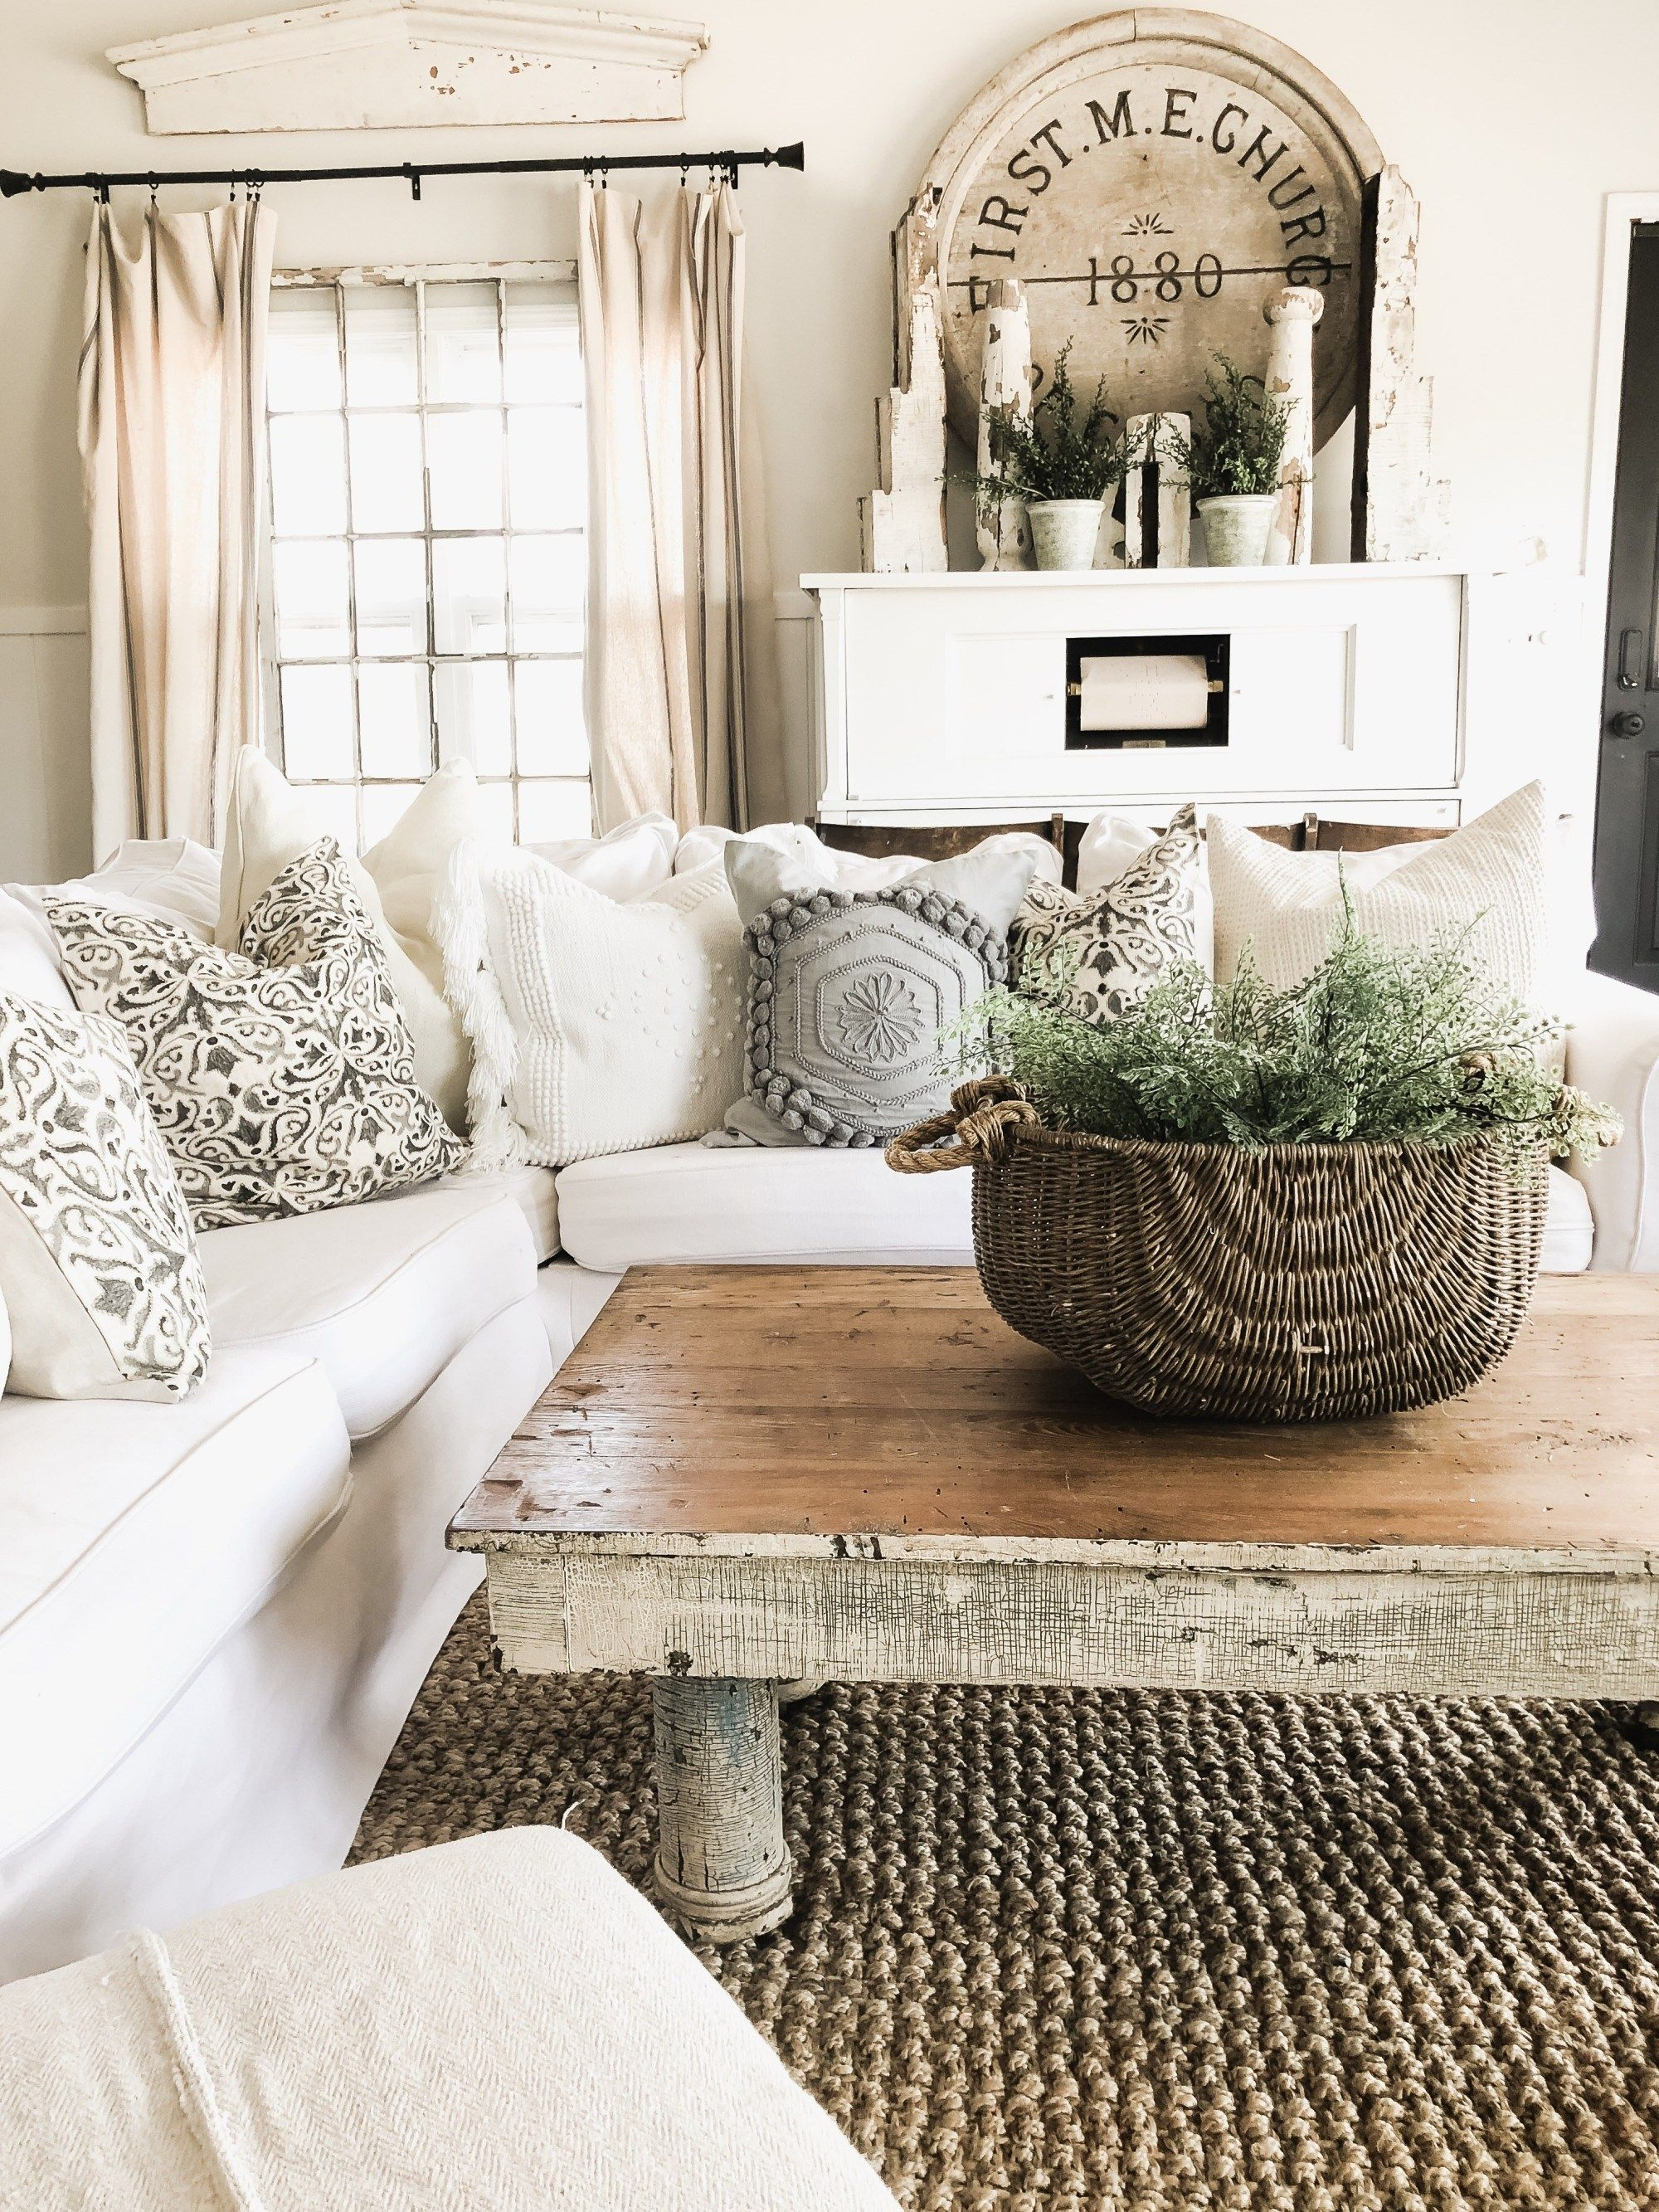 Diy Greenery Basket Decor Living Room Decor Rustic Farmh